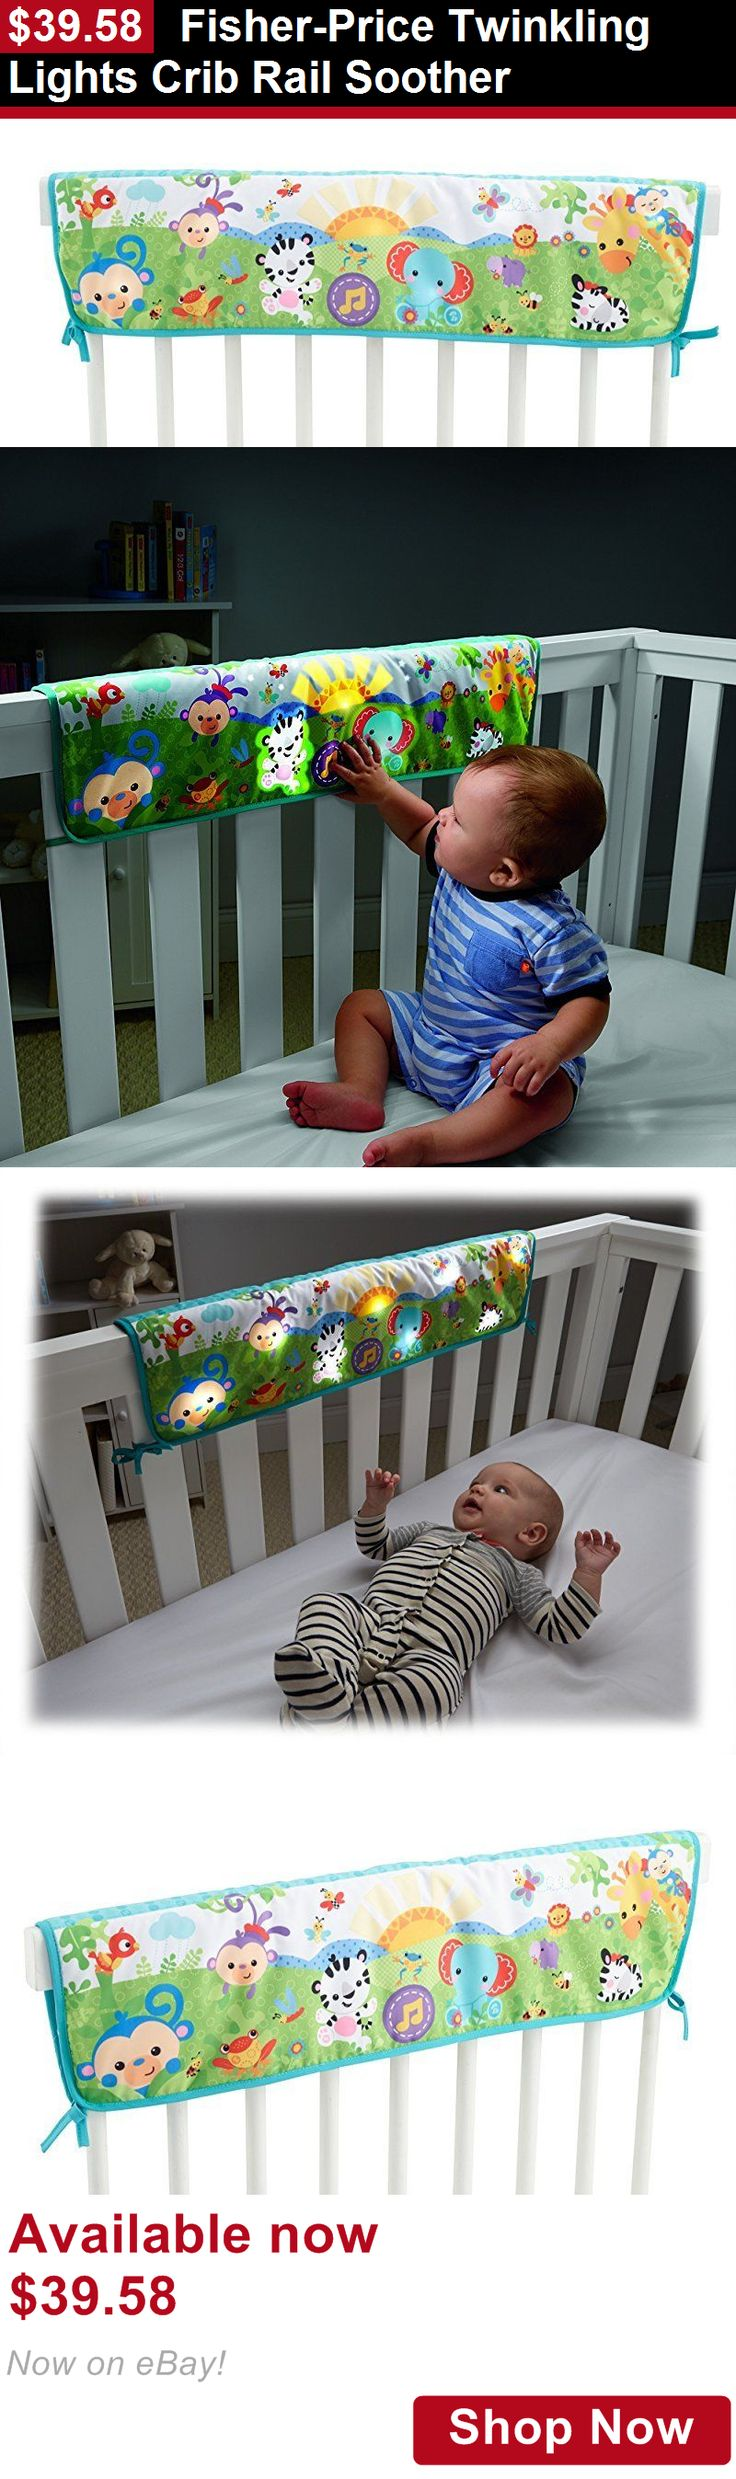 Crib Toys: Fisher-Price Twinkling Lights Crib Rail Soother BUY IT NOW ONLY: $39.58